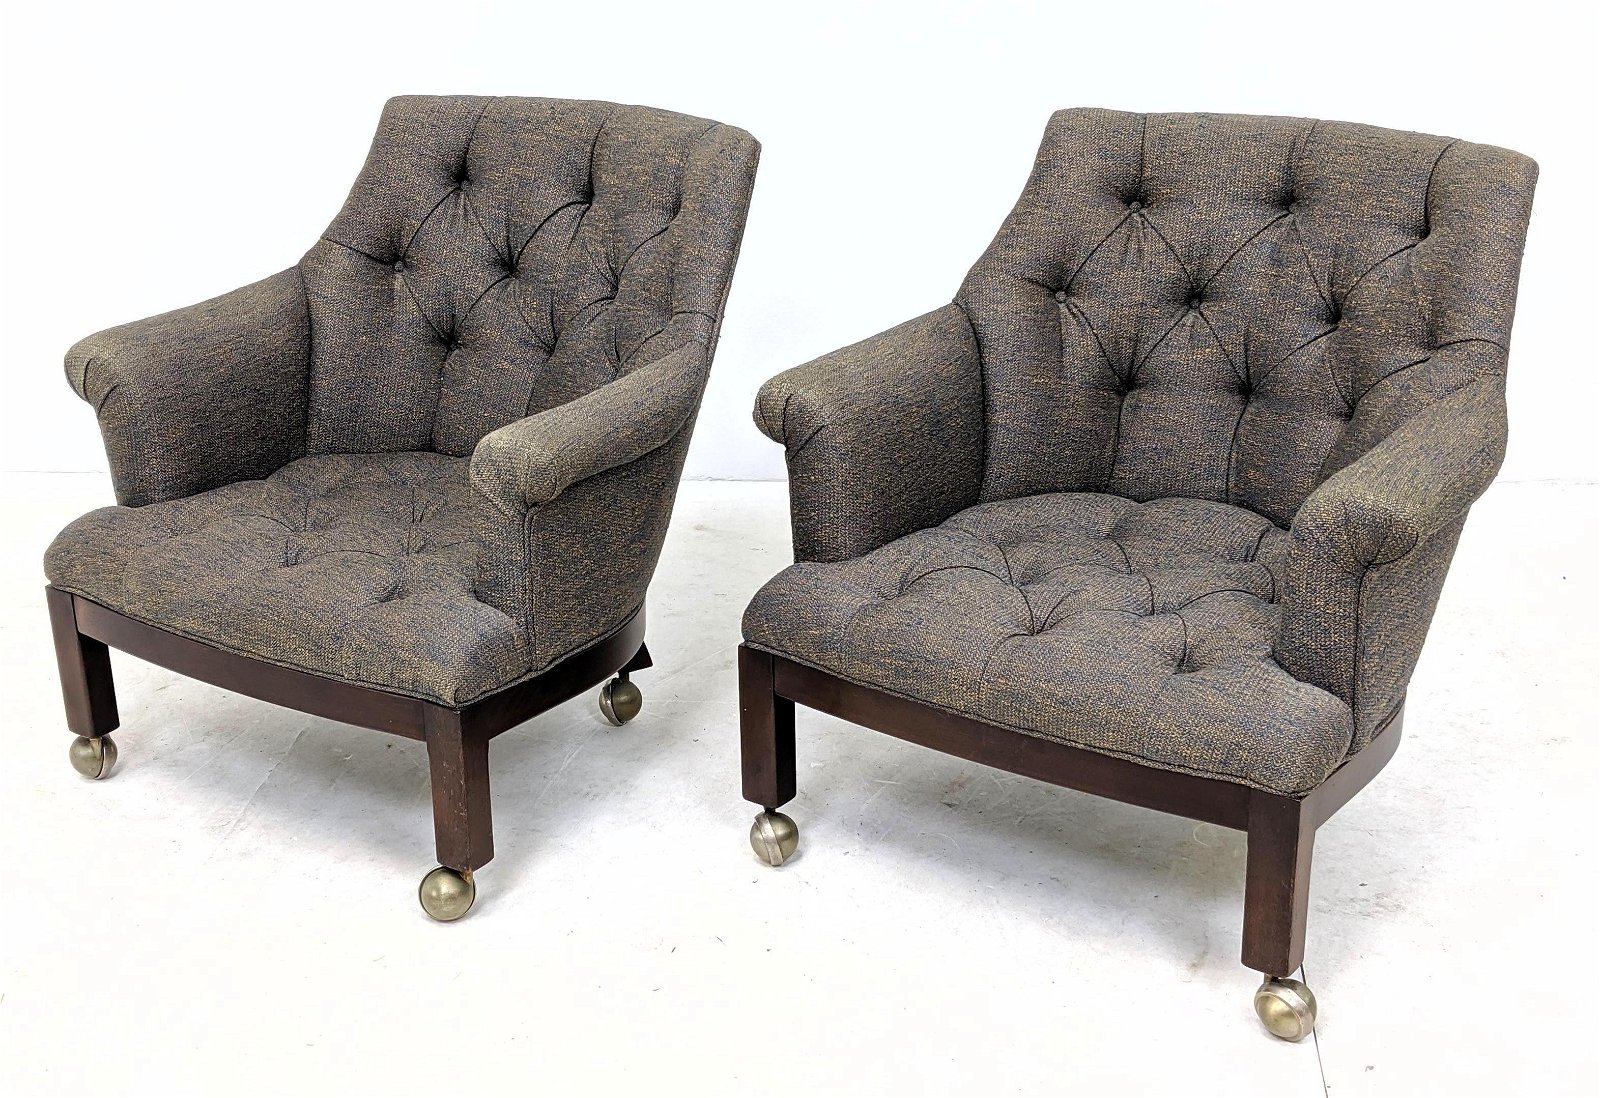 Pr American Modern Tufted Arm Club Chairs. Heather upho